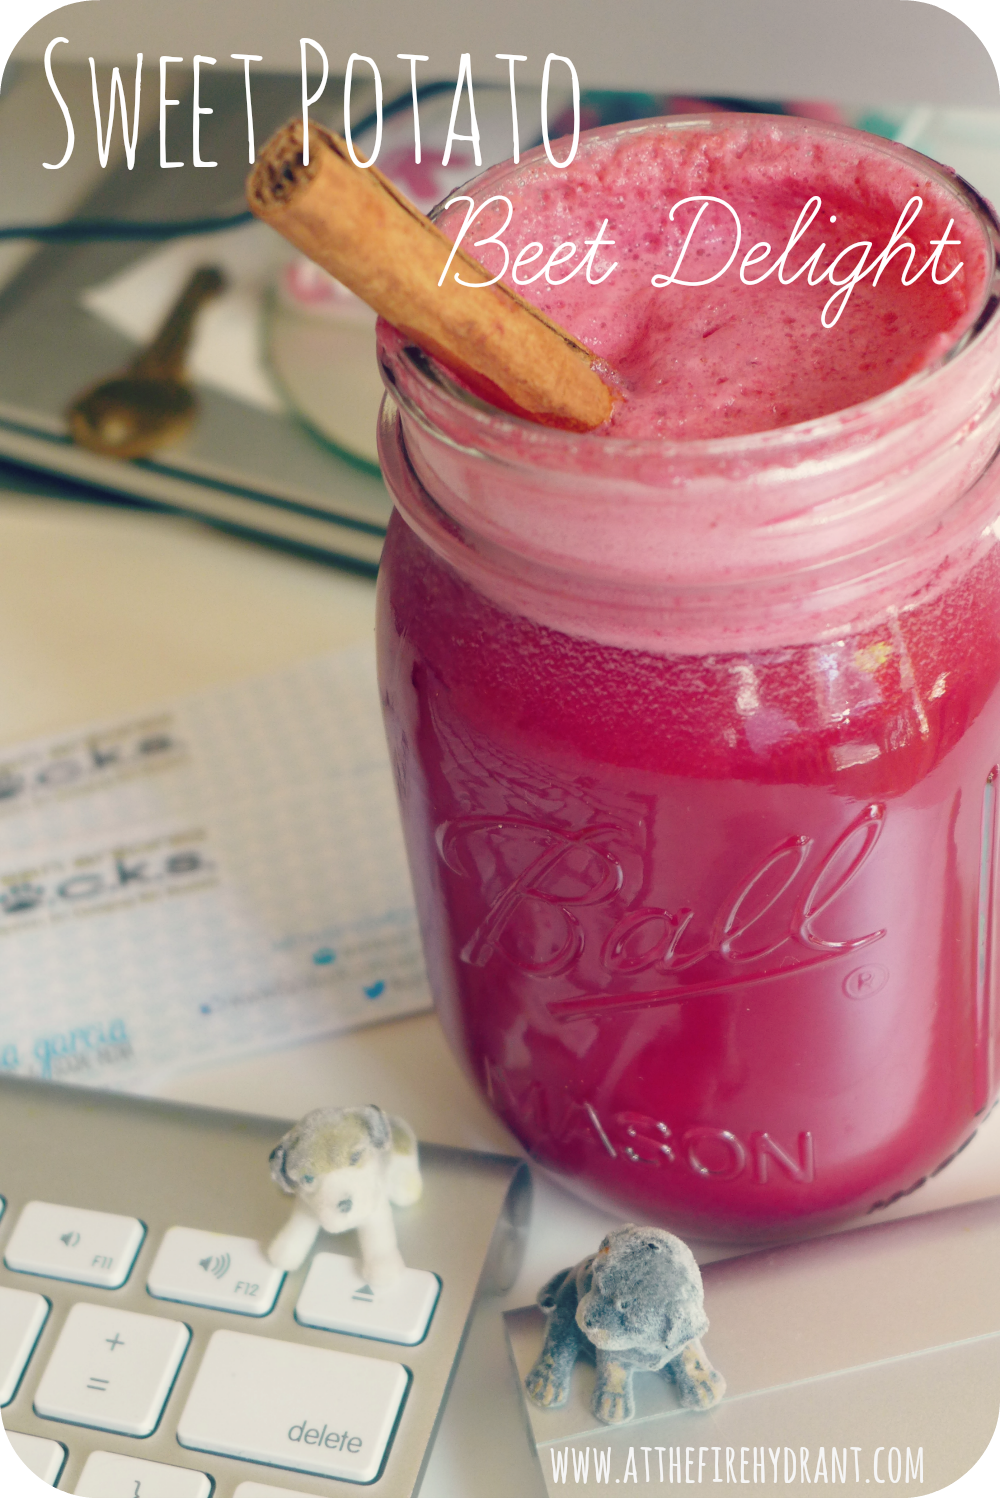 Sweet Potato Beet Delight